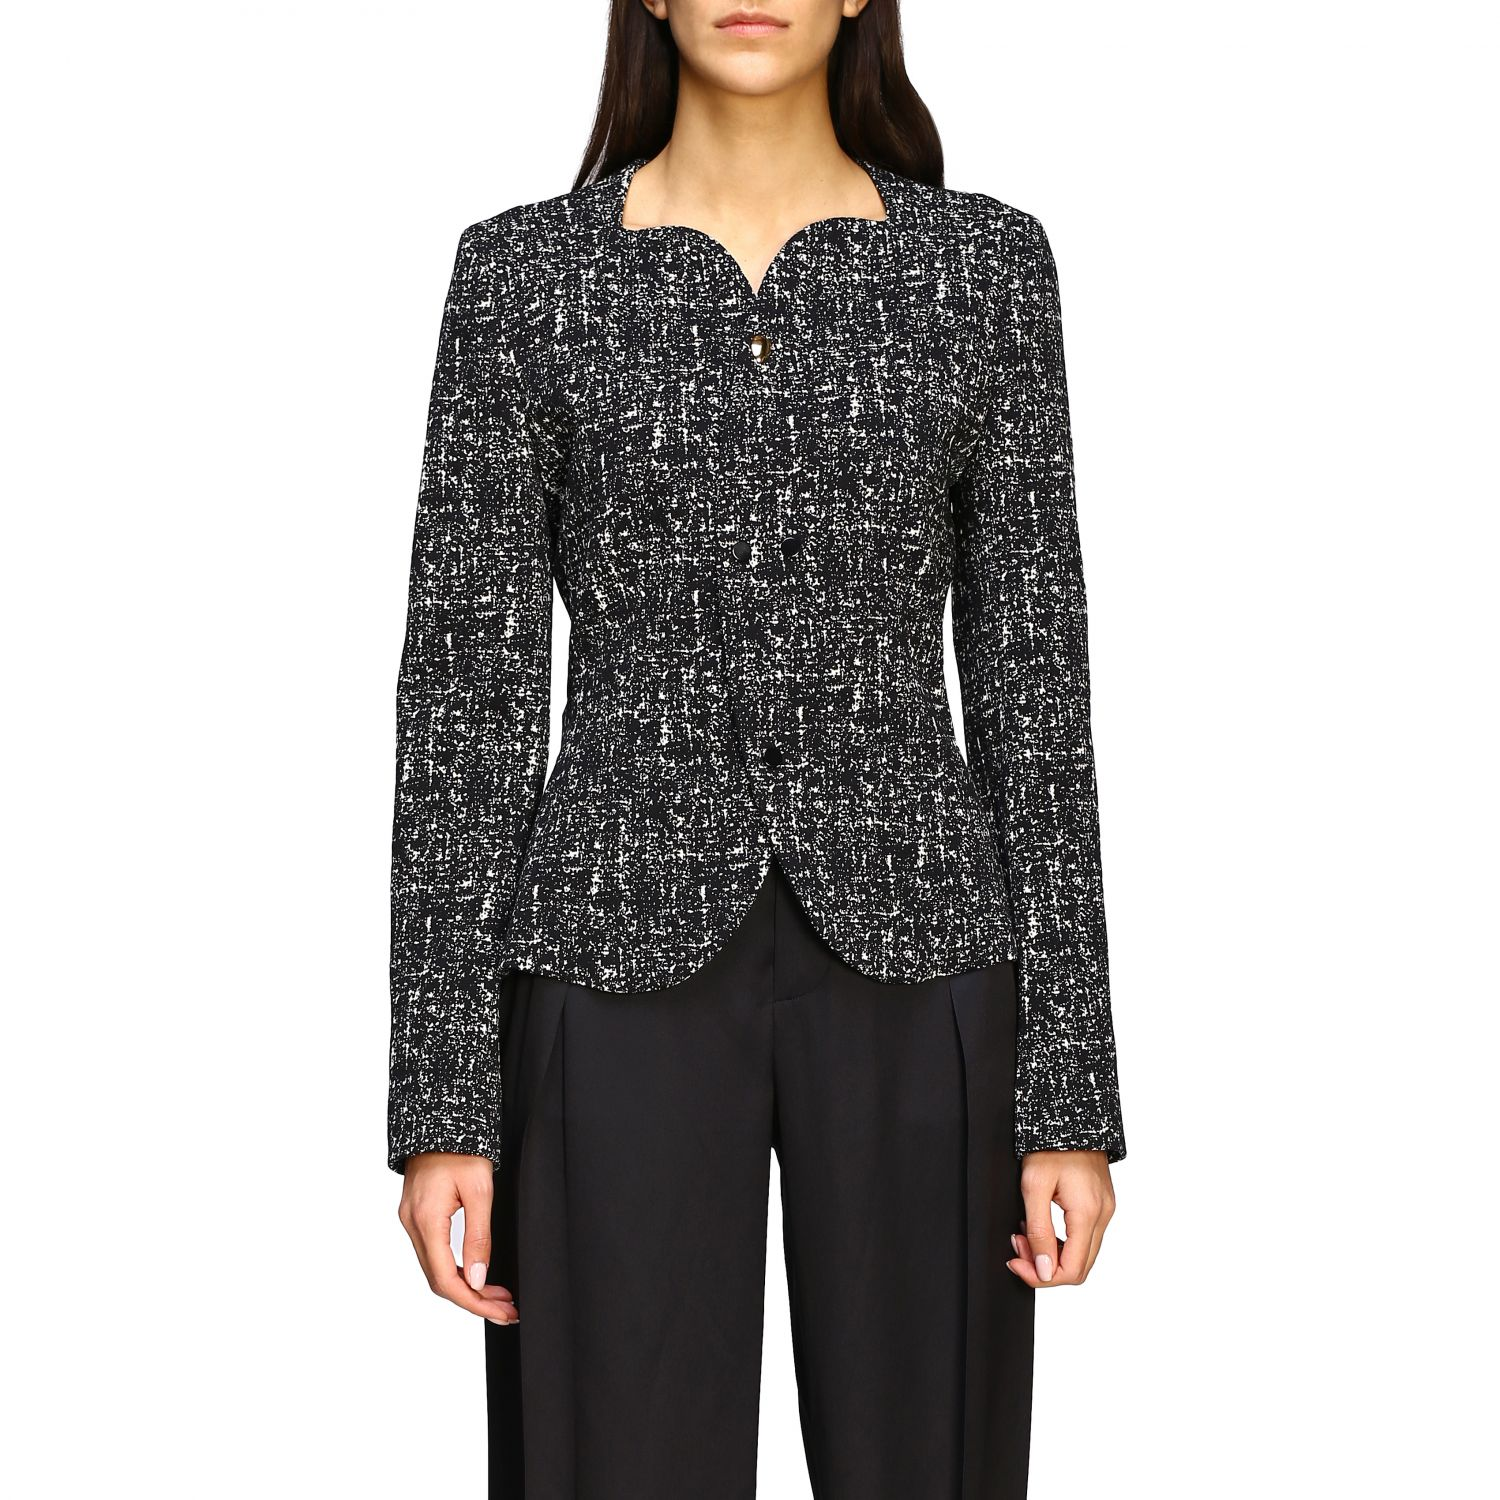 Bottega Veneta jacket in blend bouclé wool black 1